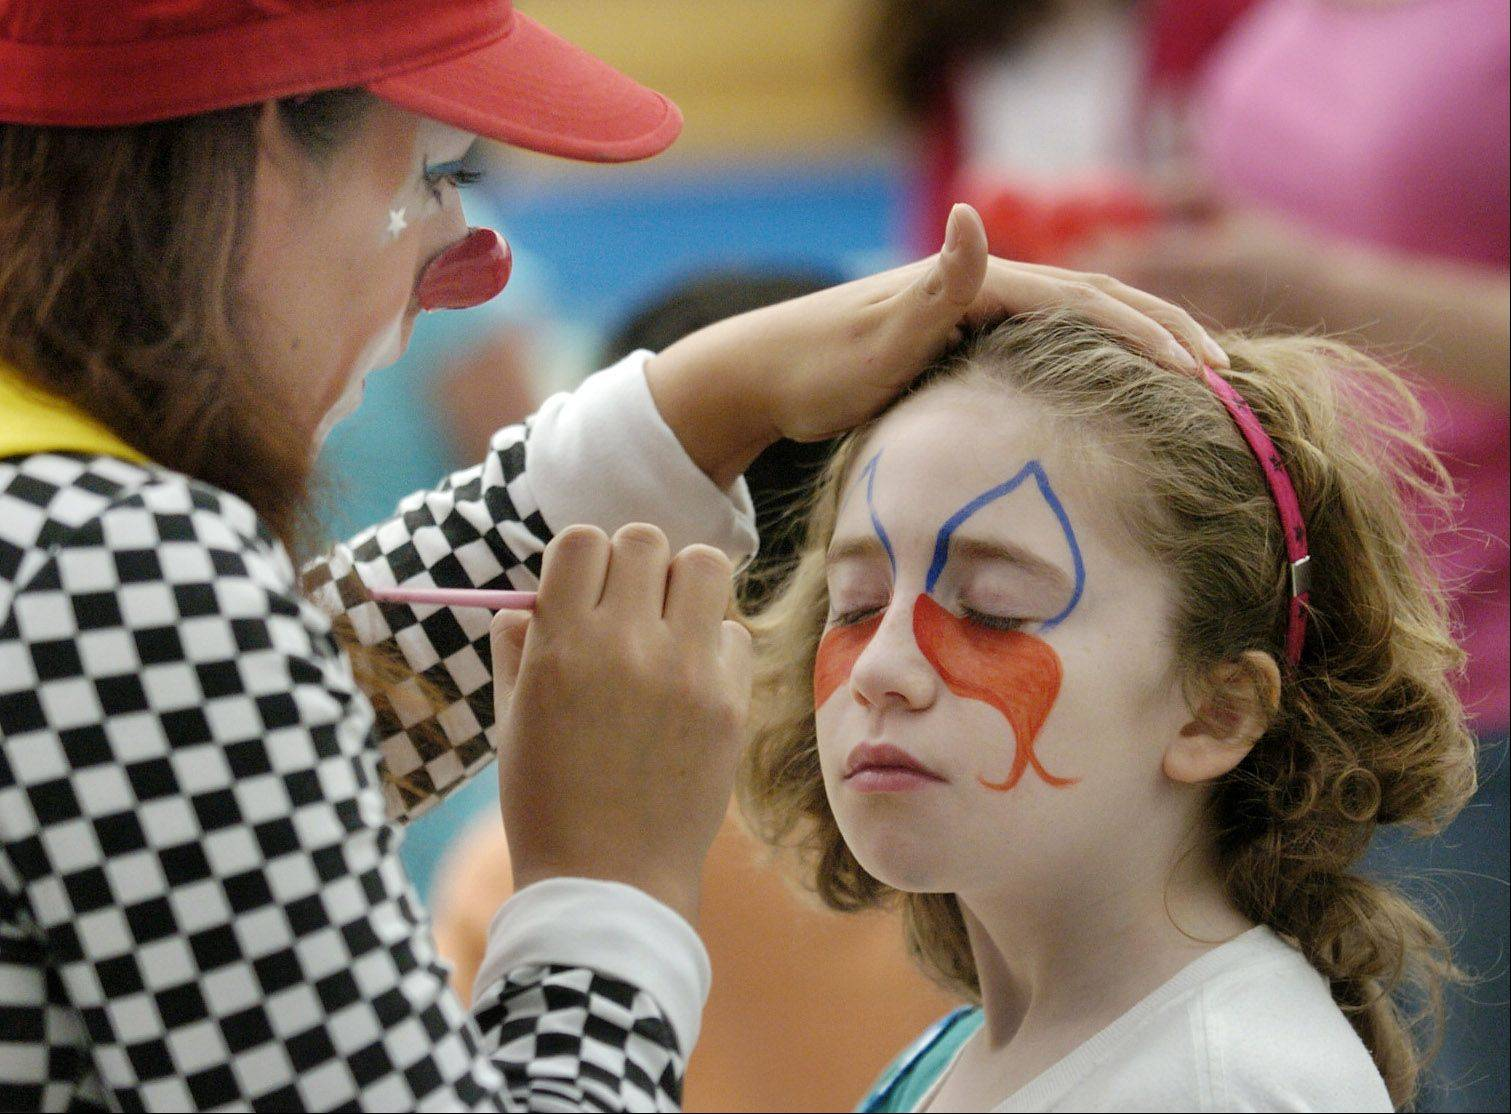 Alia Bongiorno, 11, gets her face painted by Ruth Flores of Clowns La Familia Flores during Hanover Park's 2010 Kids at Hope Coalition Foundation Days. This year's Kids at Hope Community Resource Fair is being held in conjunction with the village's 2nd Annual Hometown Seminar, both of which aim to connect residents with resources.